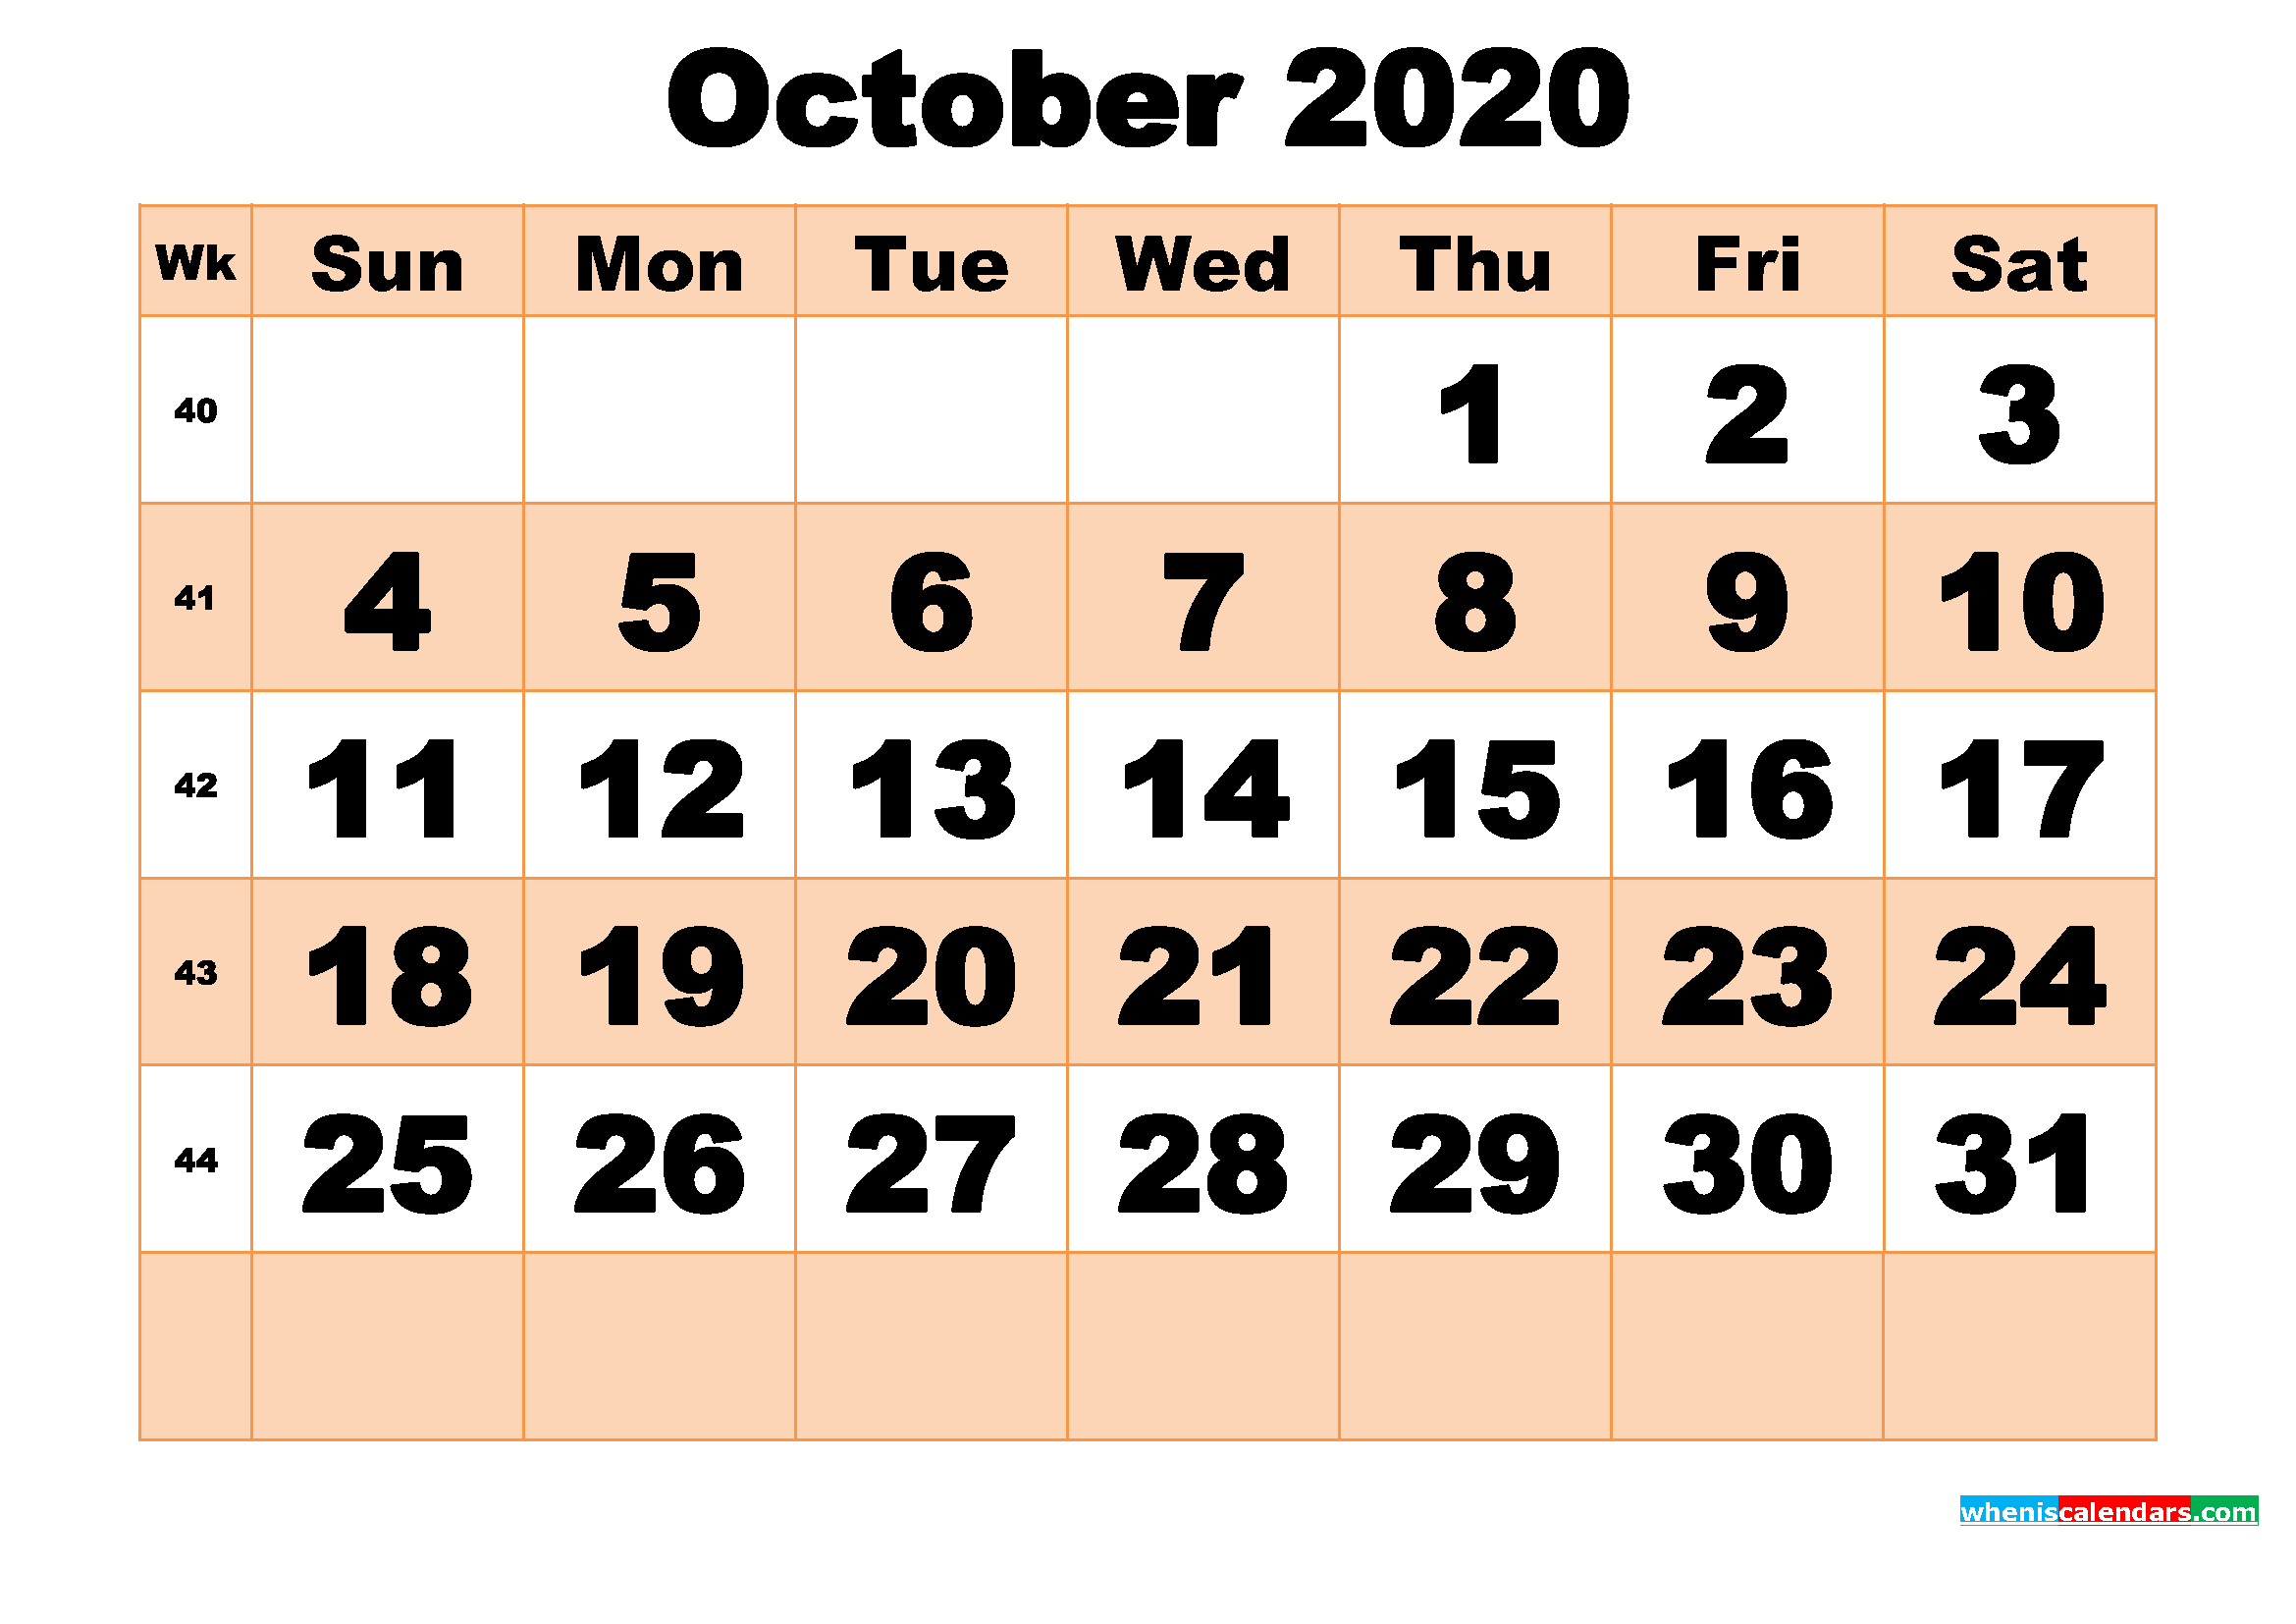 Free Printable October 2020 Calendar Template Word, PDF